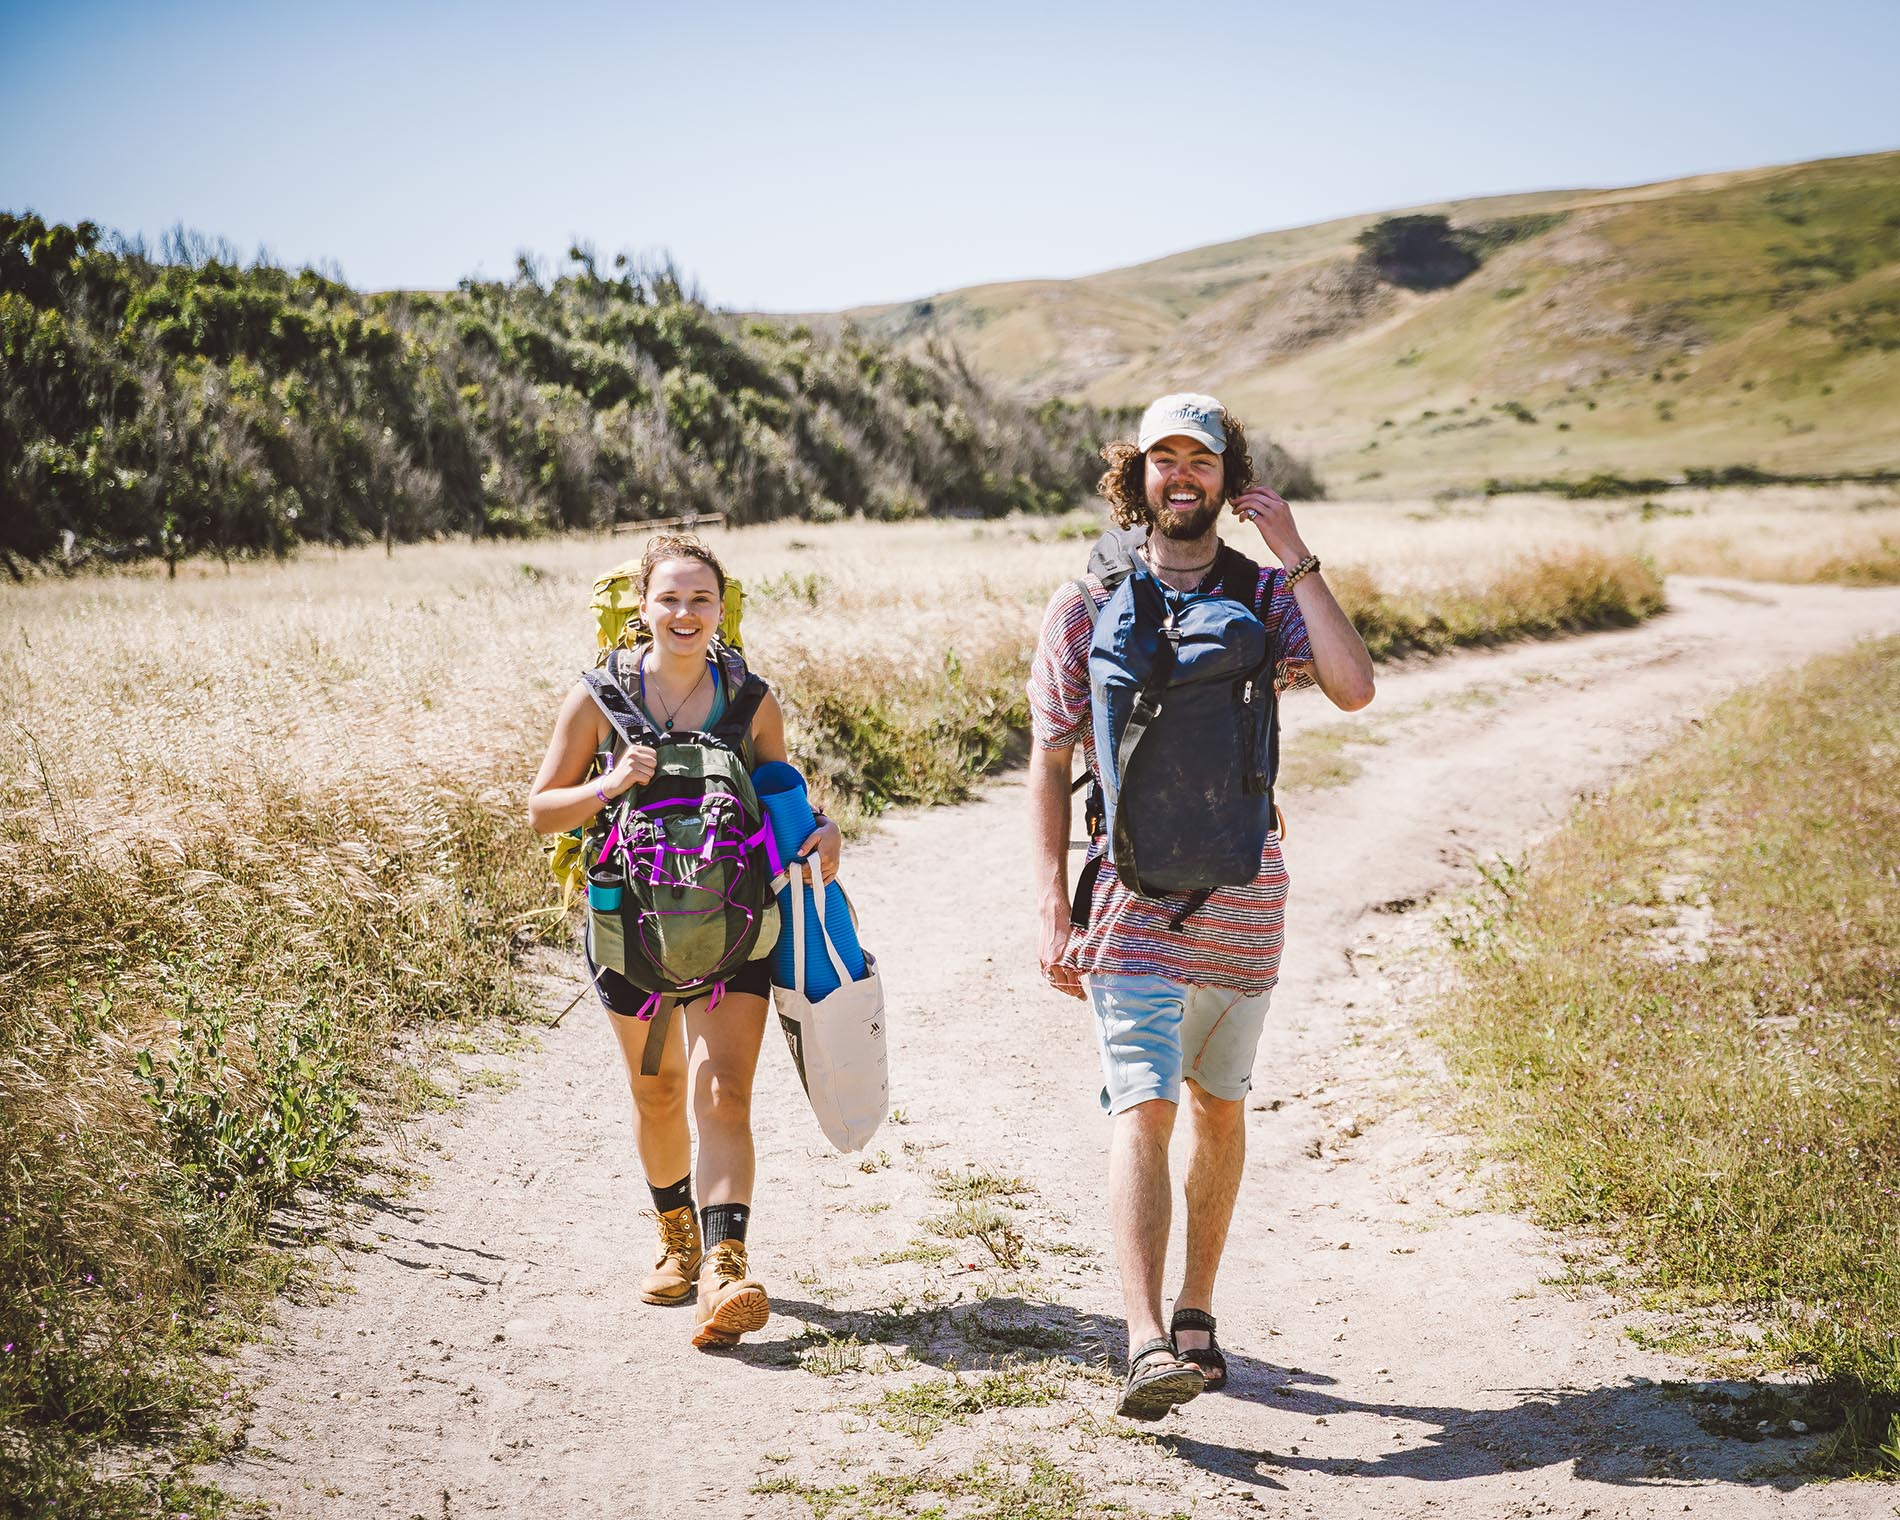 Two hikers on the Torrey Pines trail